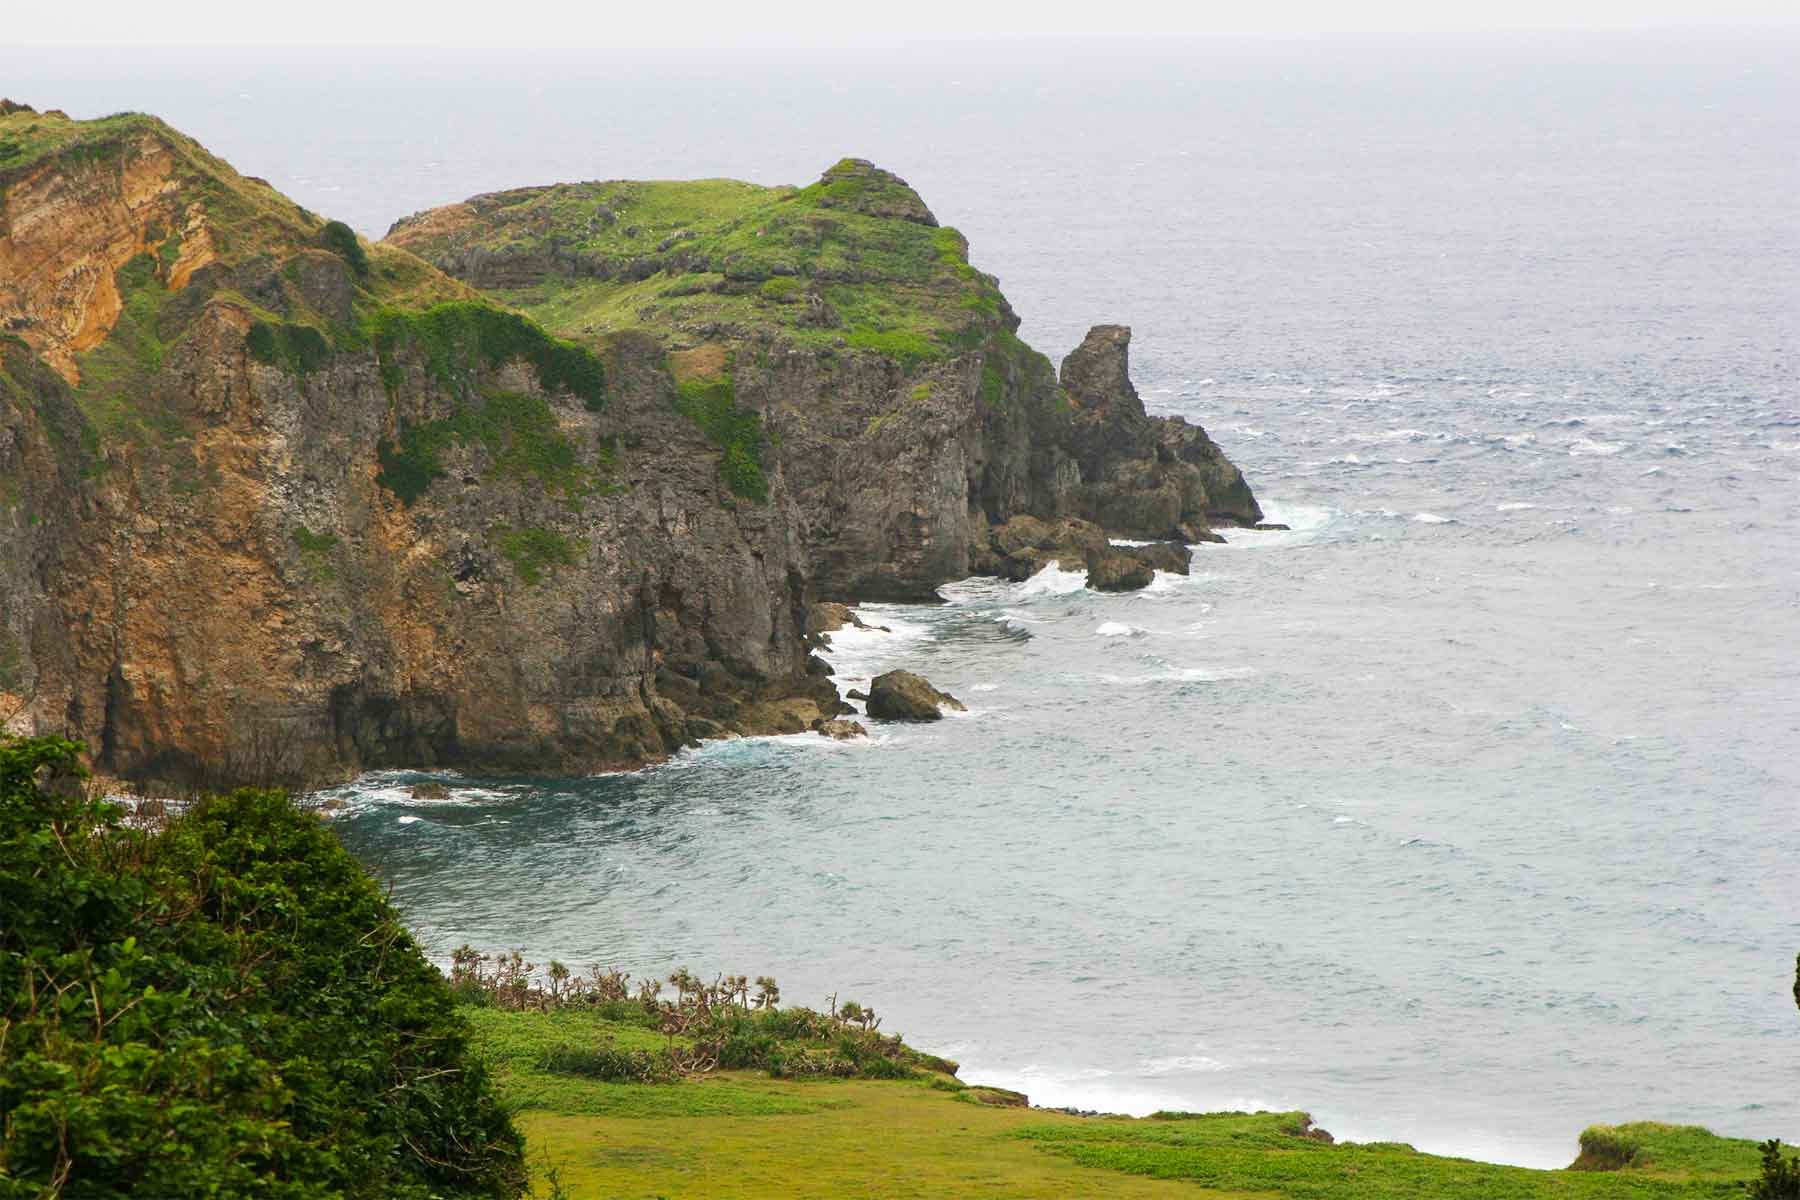 Batanes Islands Philippines - Austronesian Studies - Ivatan Culture - Archaeological Research - Dr Steven Andrew Martin